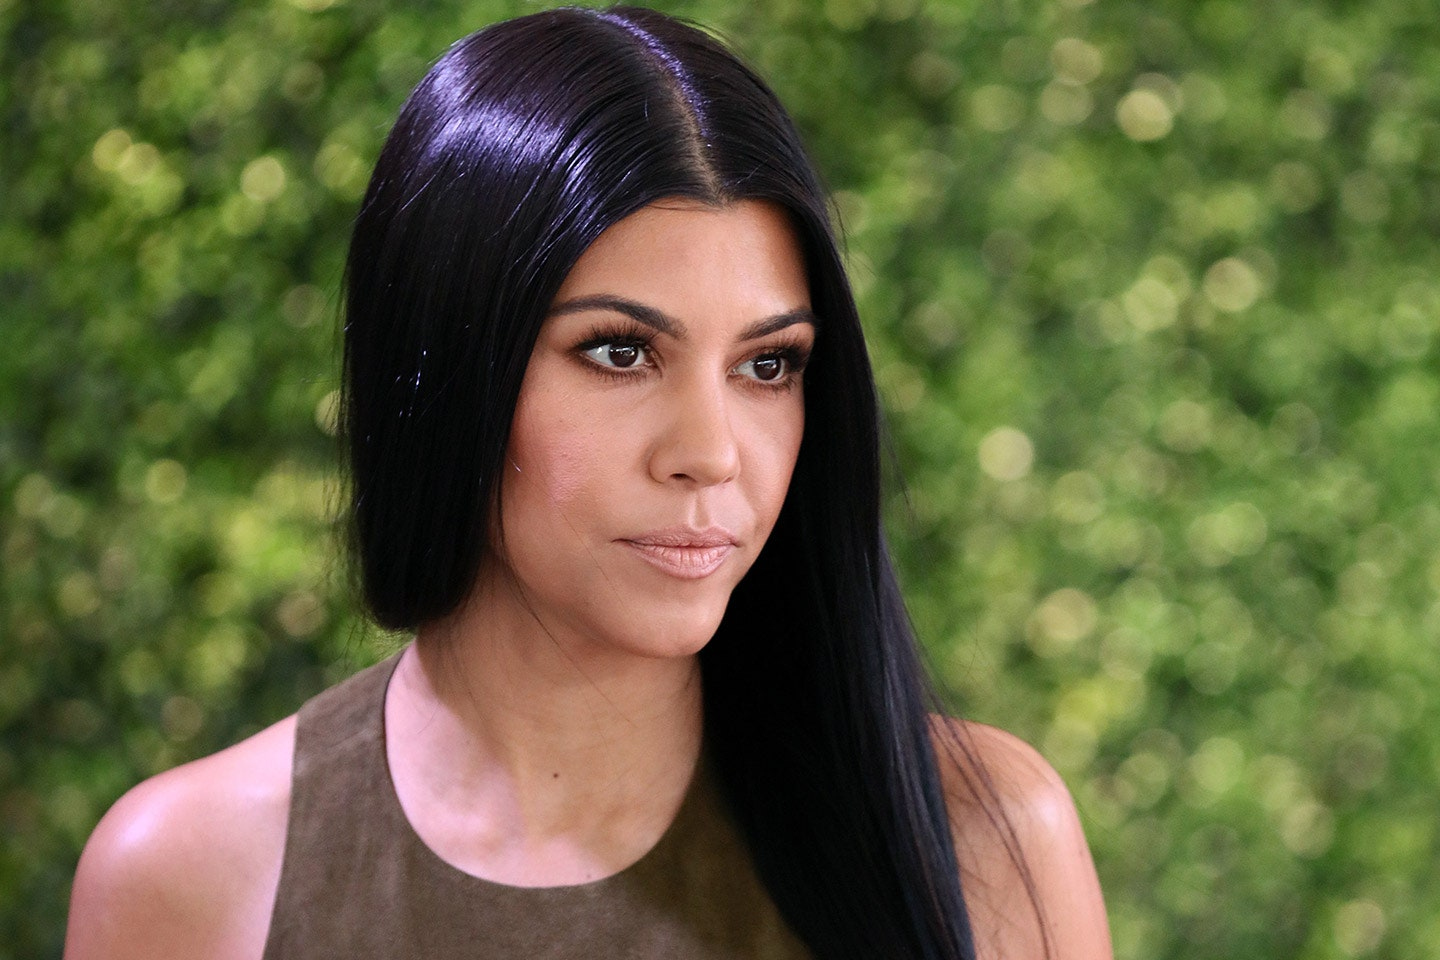 kuwtk-kourtney-kardashian-gets-criticism-for-referring-to-herself-as-moana-in-new-bathing-suit-pics-youre-white